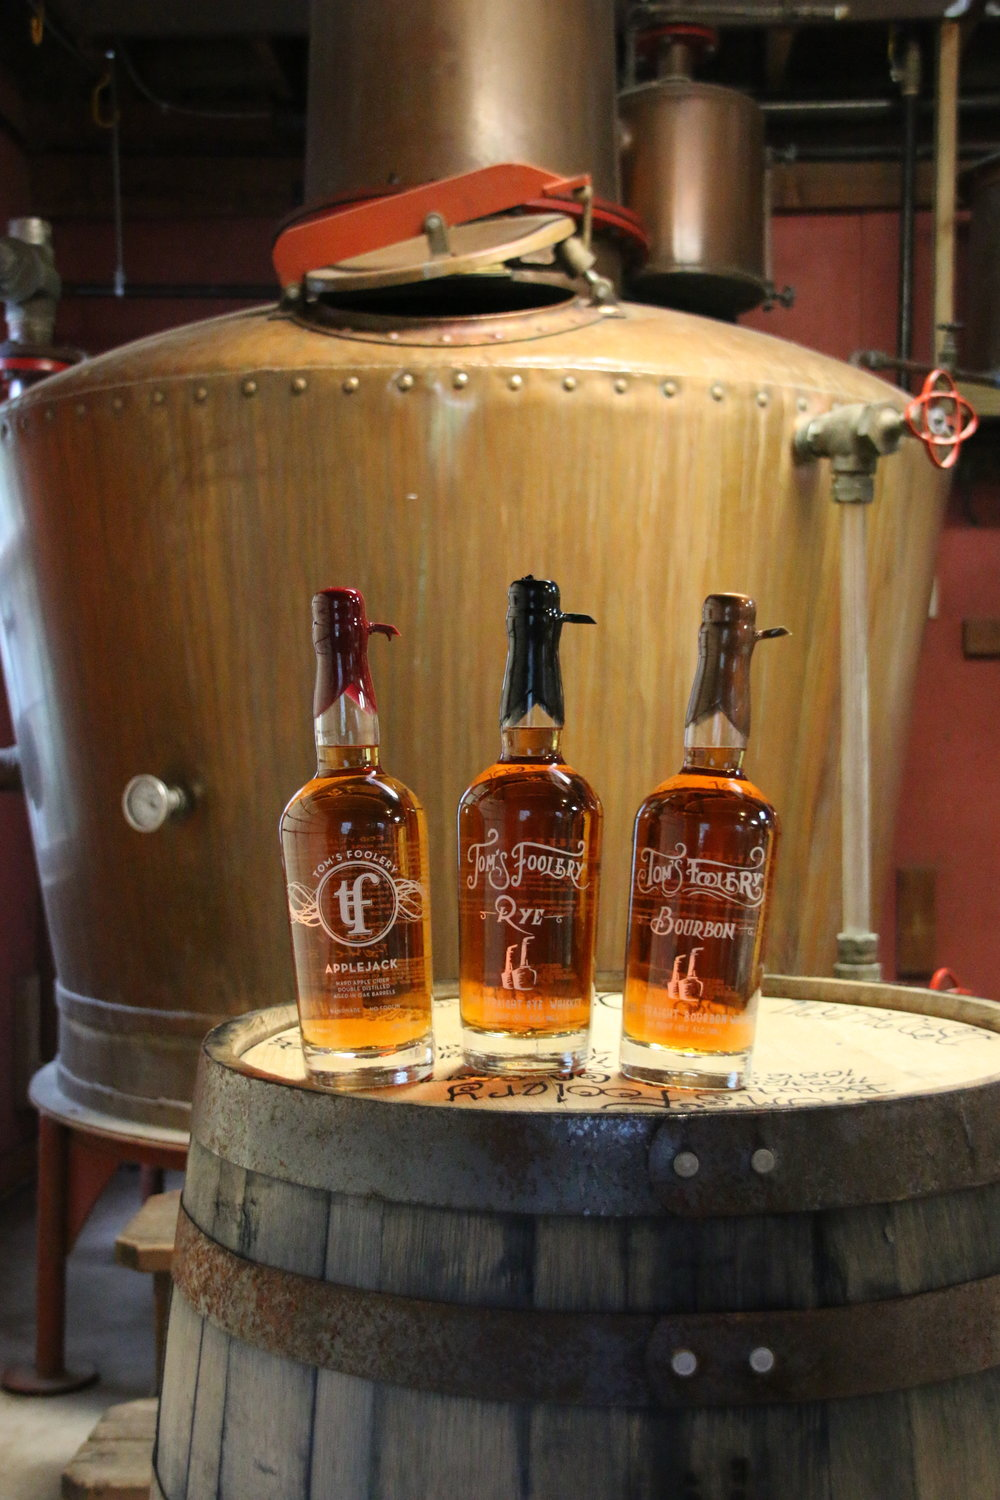 Bourbon, Rye and Applejack - Our three core products